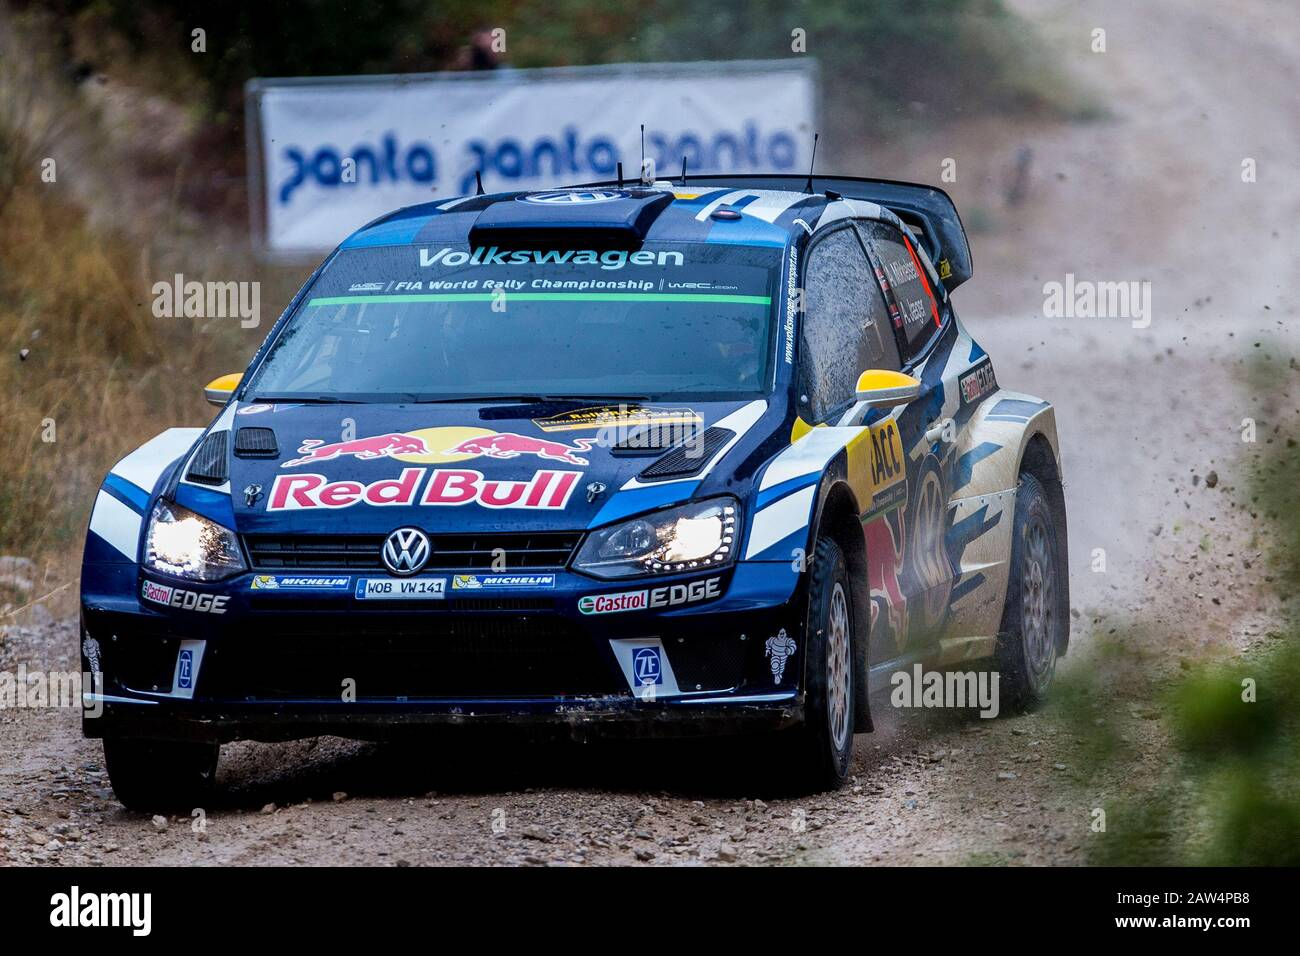 Andreas Mikkelsen Anders Jaeger Volkswagen Polo R Wrc During The World Rally Car Racc Catalunya Costa Dourada 2016 Rally Spain In Catalunya Spai Stock Photo Alamy